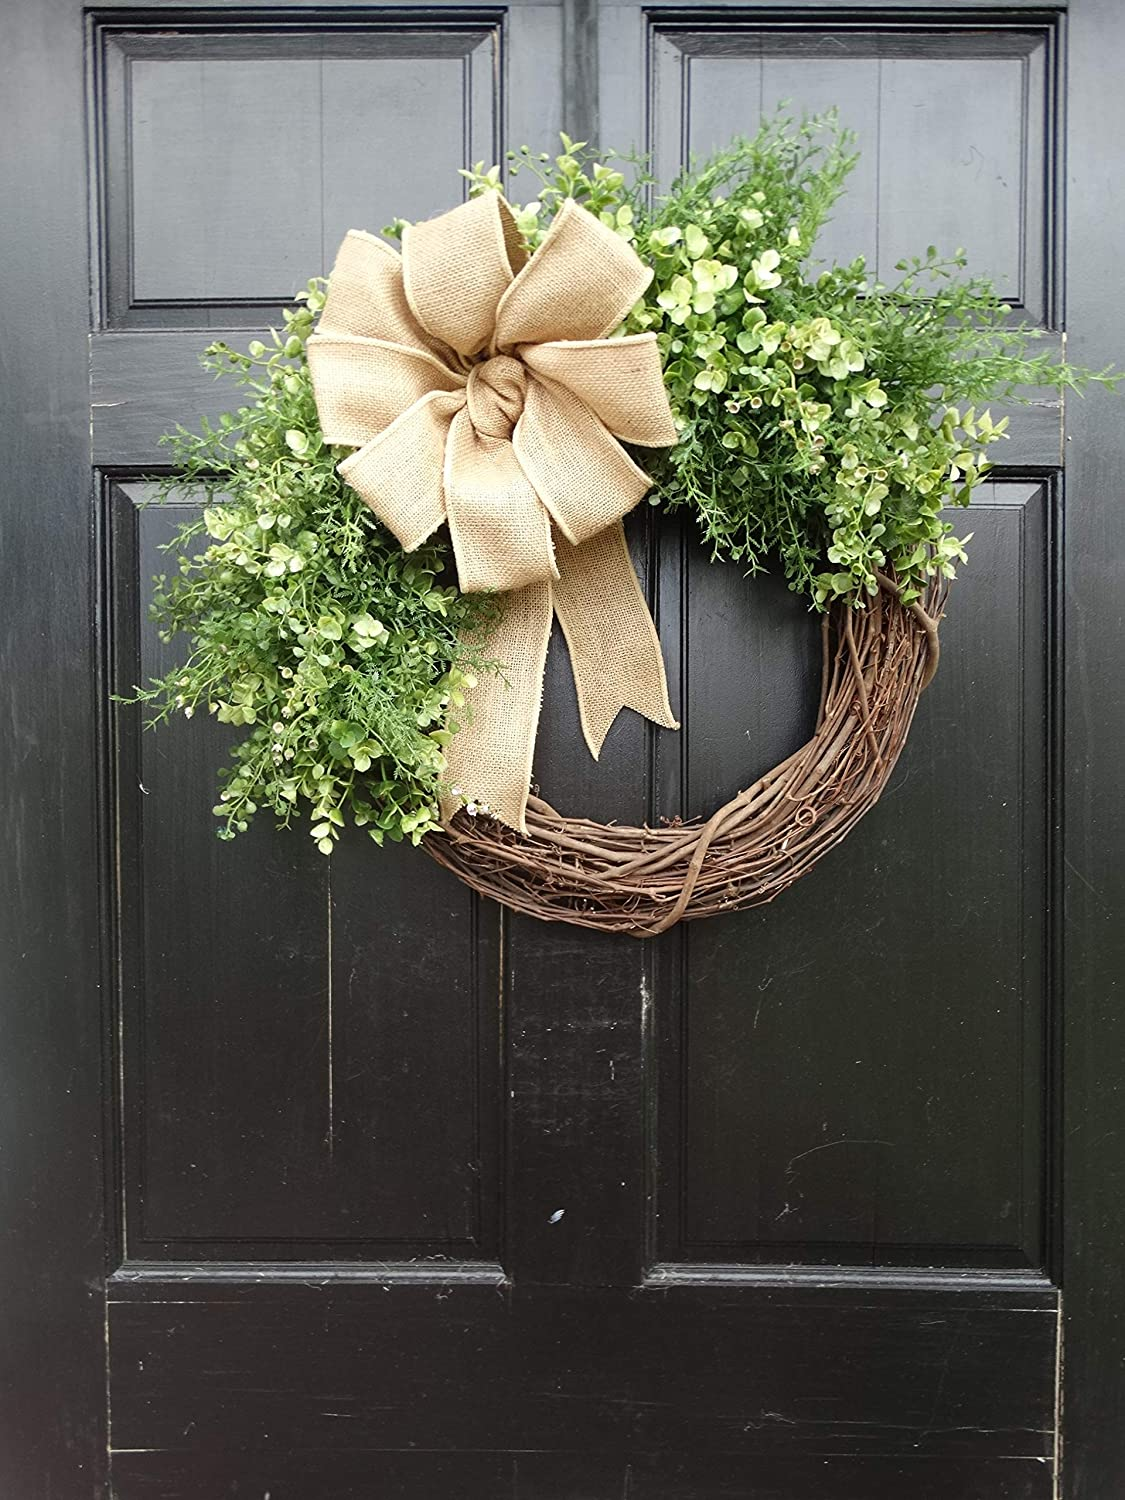 Artificial Mixed Greenery Grapevine Wreath for Year Round Spring Summer Front Door Decor